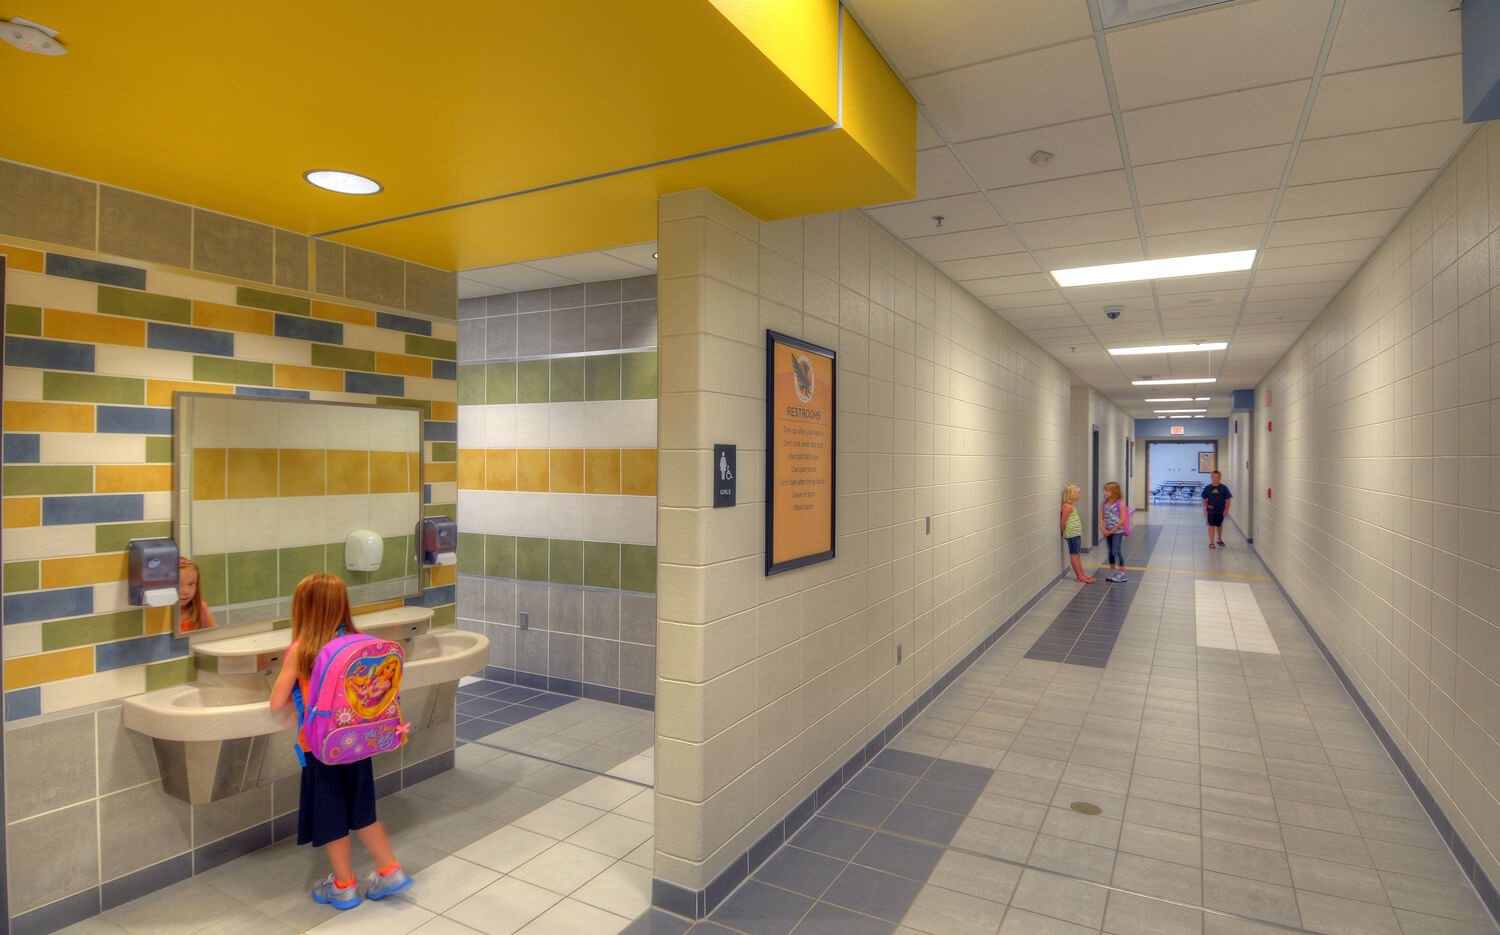 cmba-architects-portfolio-hinton-elementary--restroom Elementary Bathroom Design on room design, toilet design, small bath design, staircase design, tile design, garage design, washroom design, door design, interior design, foyer design, restroom design, pantry design, basement design, closet design, exterior design, bedroom design, nursery design, shower design, kitchen design, bathtub design,